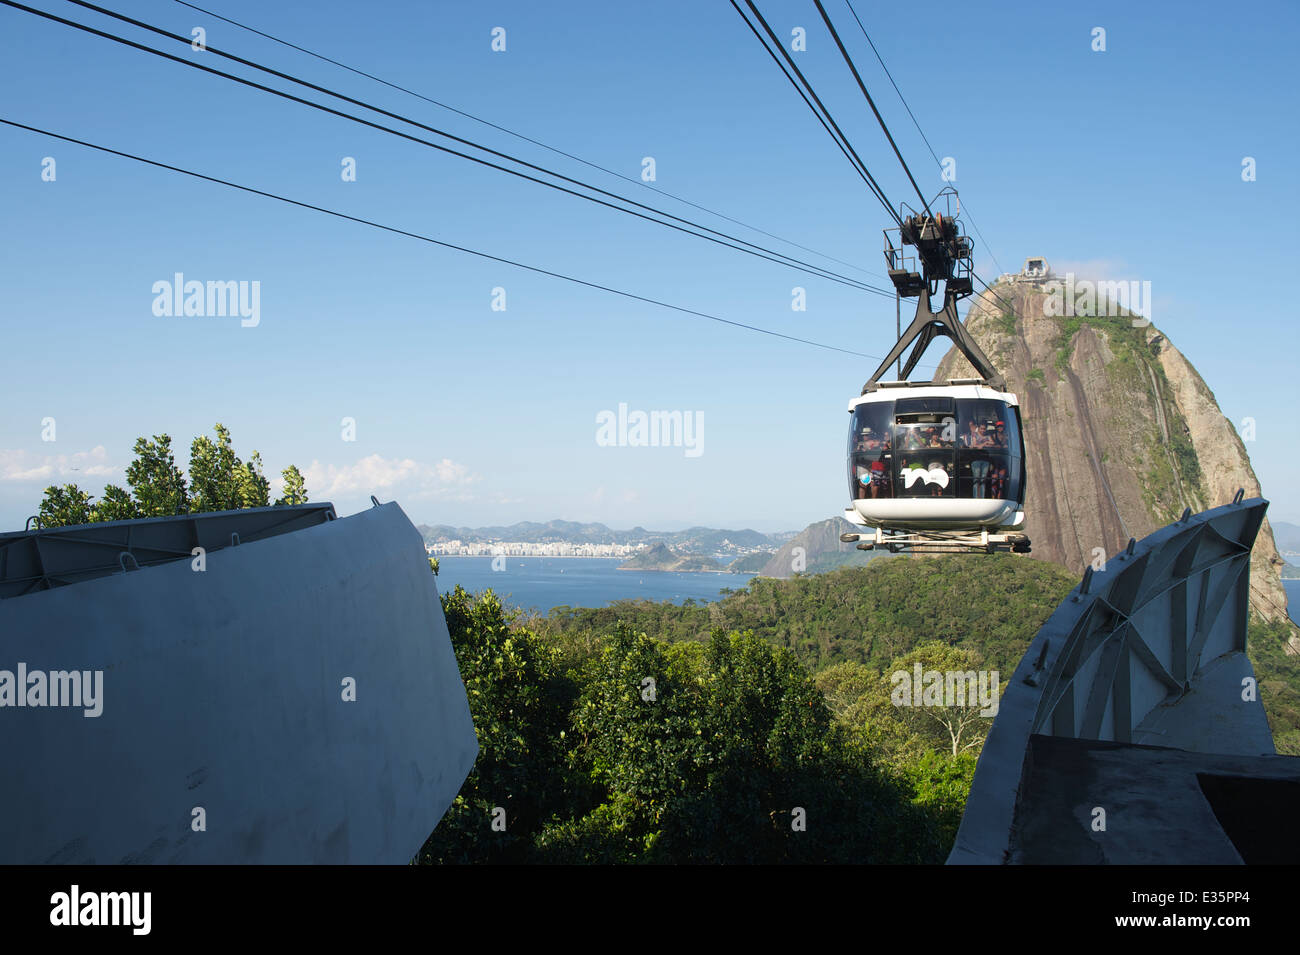 RIO DE JANEIRO, BRAZIL - OCTOBER 20, 2013: Cable car full of tourists arrives at the station on Sugarloaf Mountain. - Stock Image